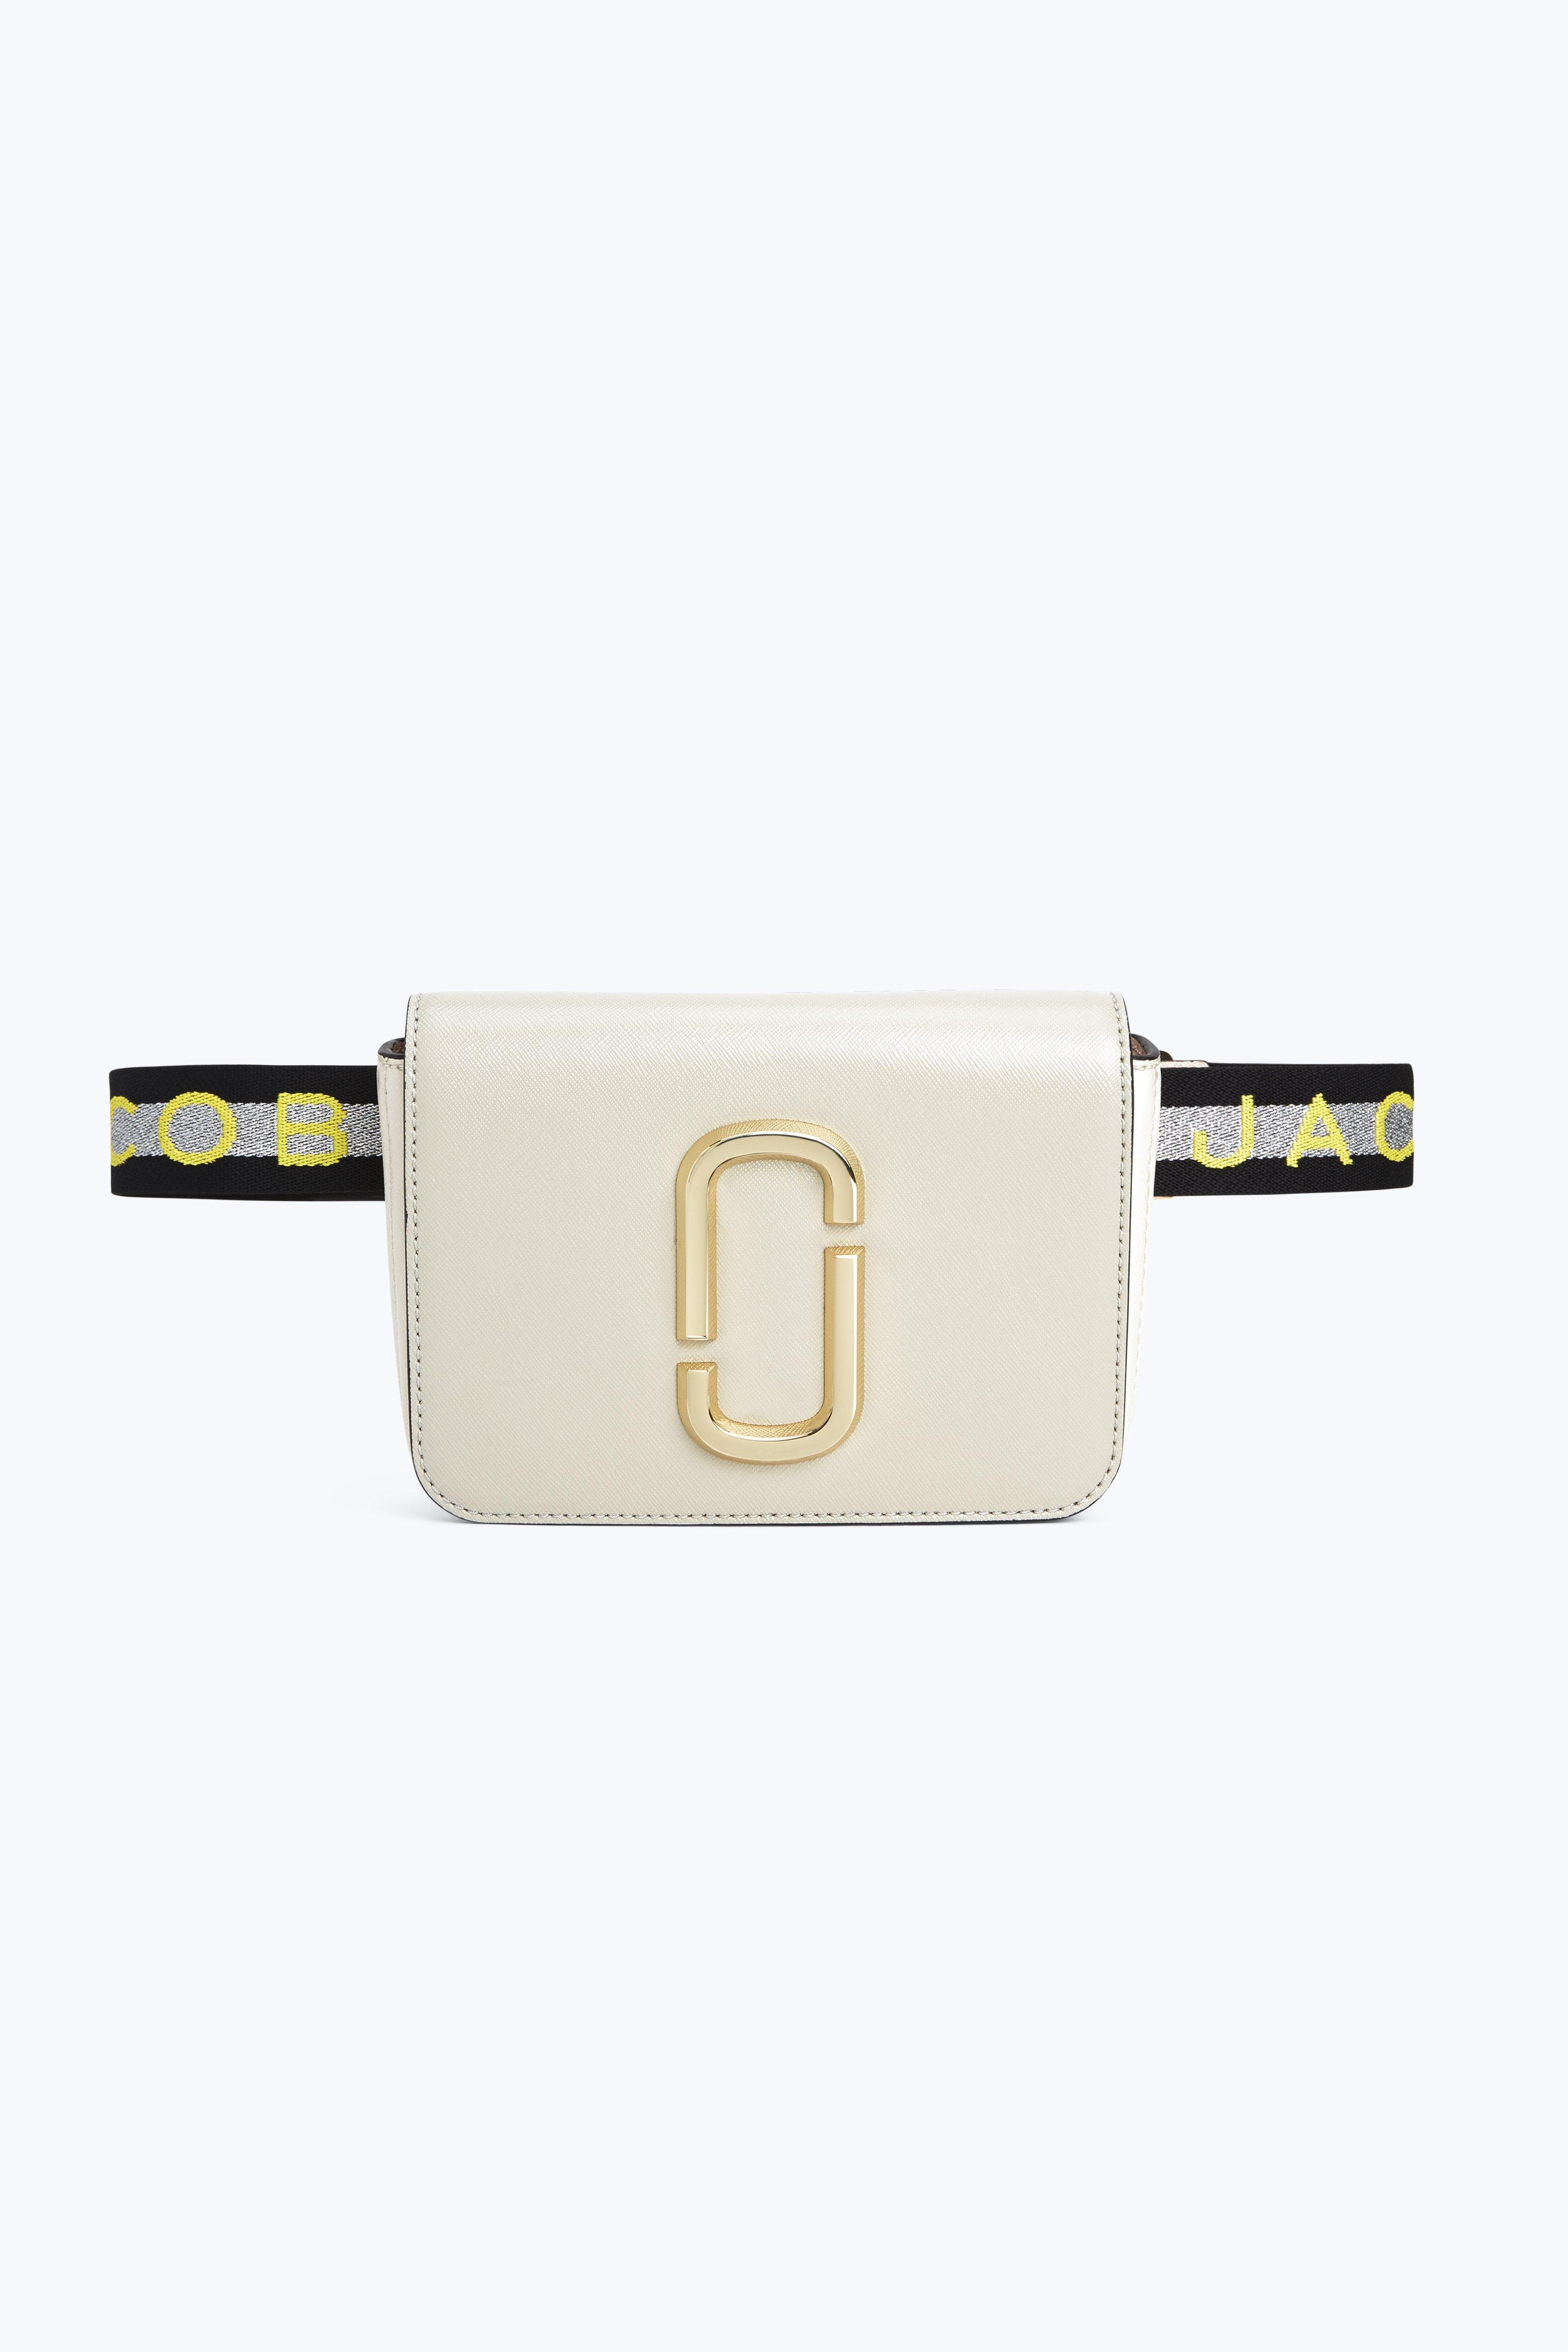 Hip Shot Convertible Leather Belt Bag - Ivory in Dust Multi